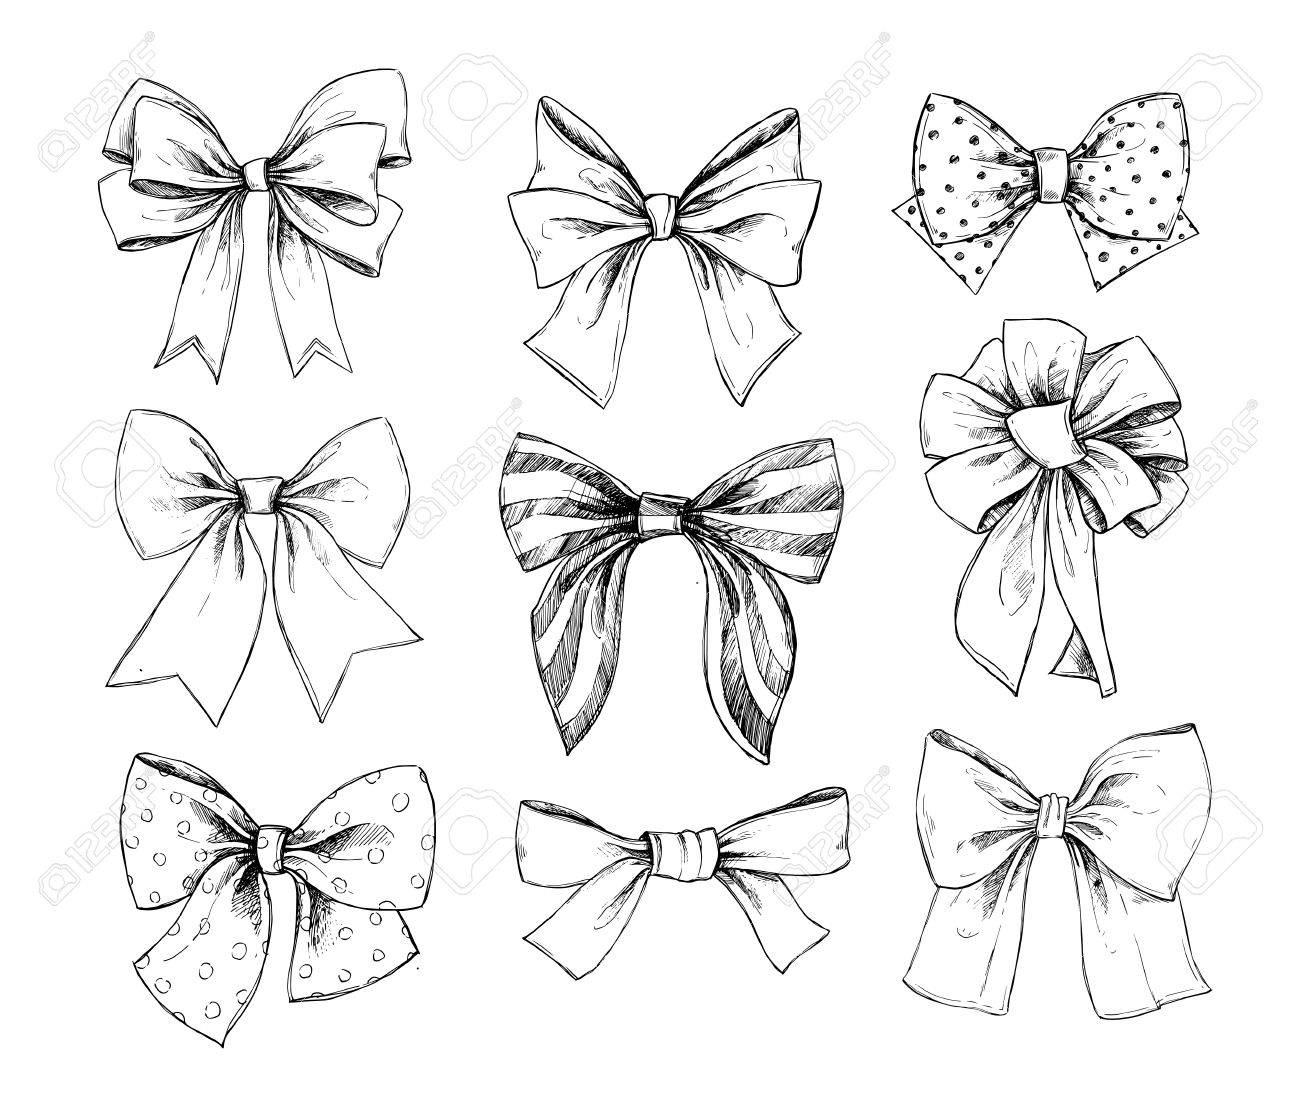 Hand drawn vector illustrations different types of bows perfect hand drawn vector illustrations different types of bows perfect for invitations greeting cards m4hsunfo